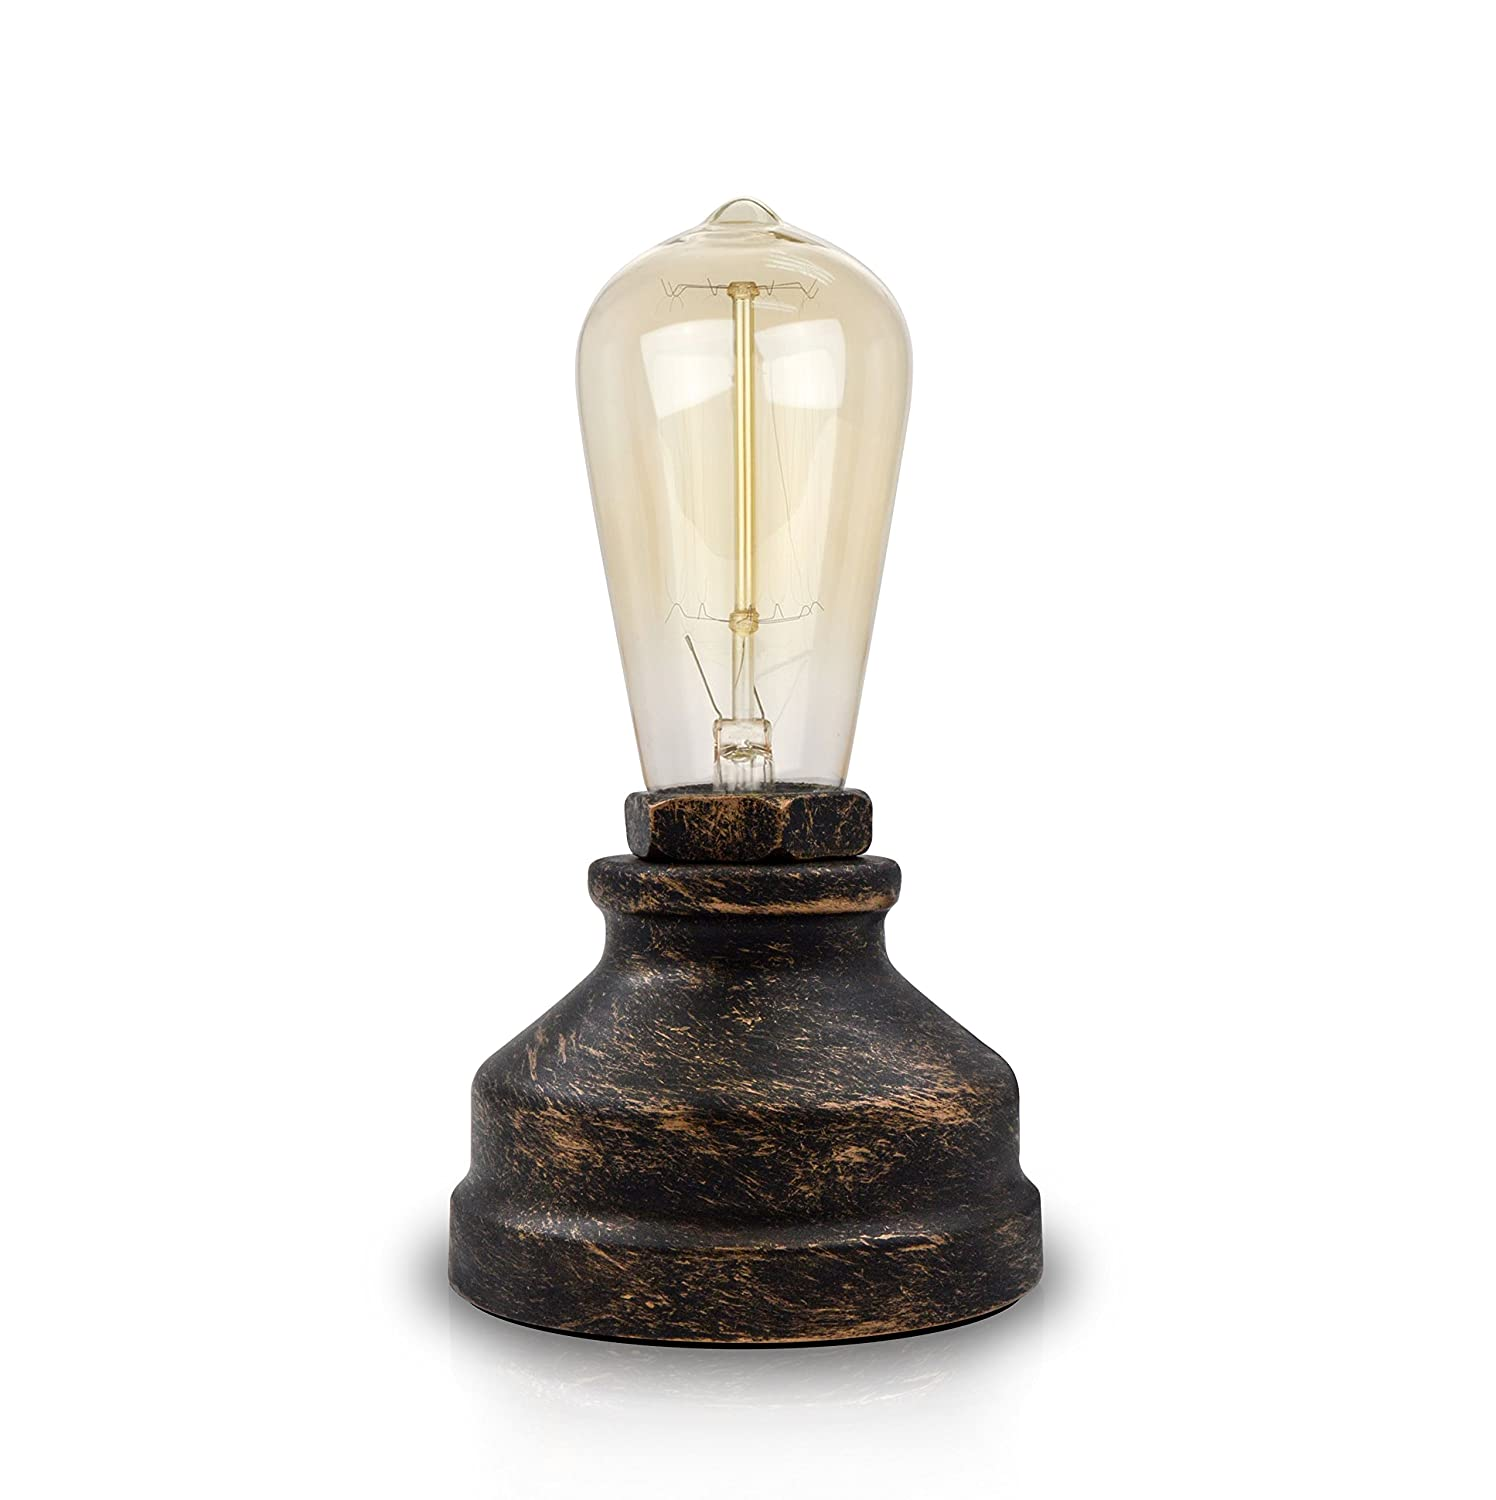 Vintage Industria Table Lamp Base For E26 Edison Bulb With Touch Dimmable  Antique Night Light Desk Lamps Bedside Living Room Bedroom Decoration For  Loft ...